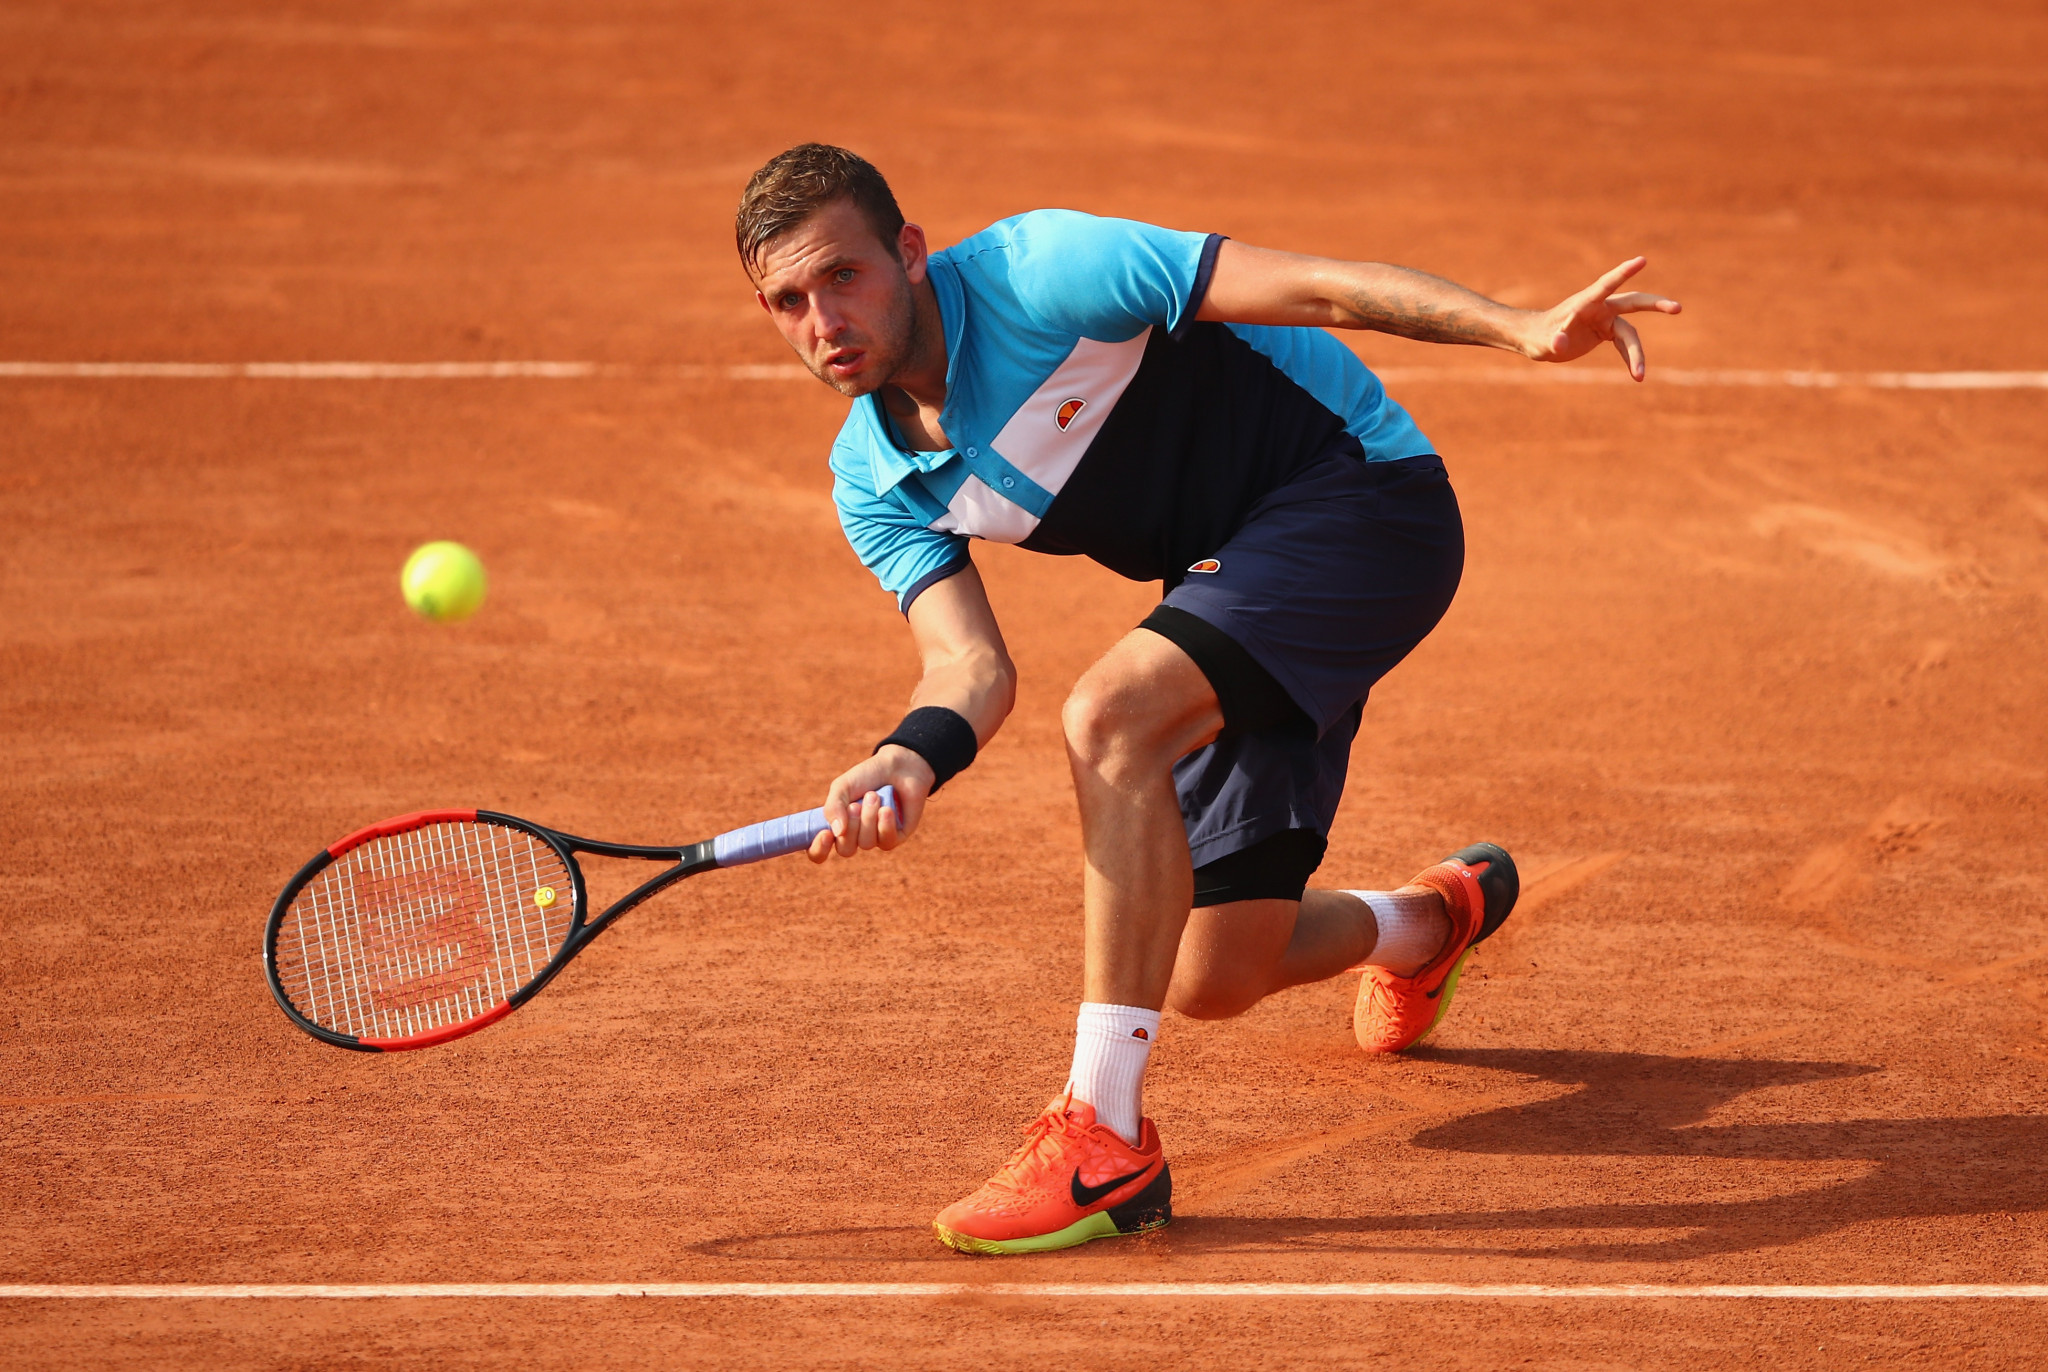 Dan Evans Suspended 1 Year After Positive Cocaine Test